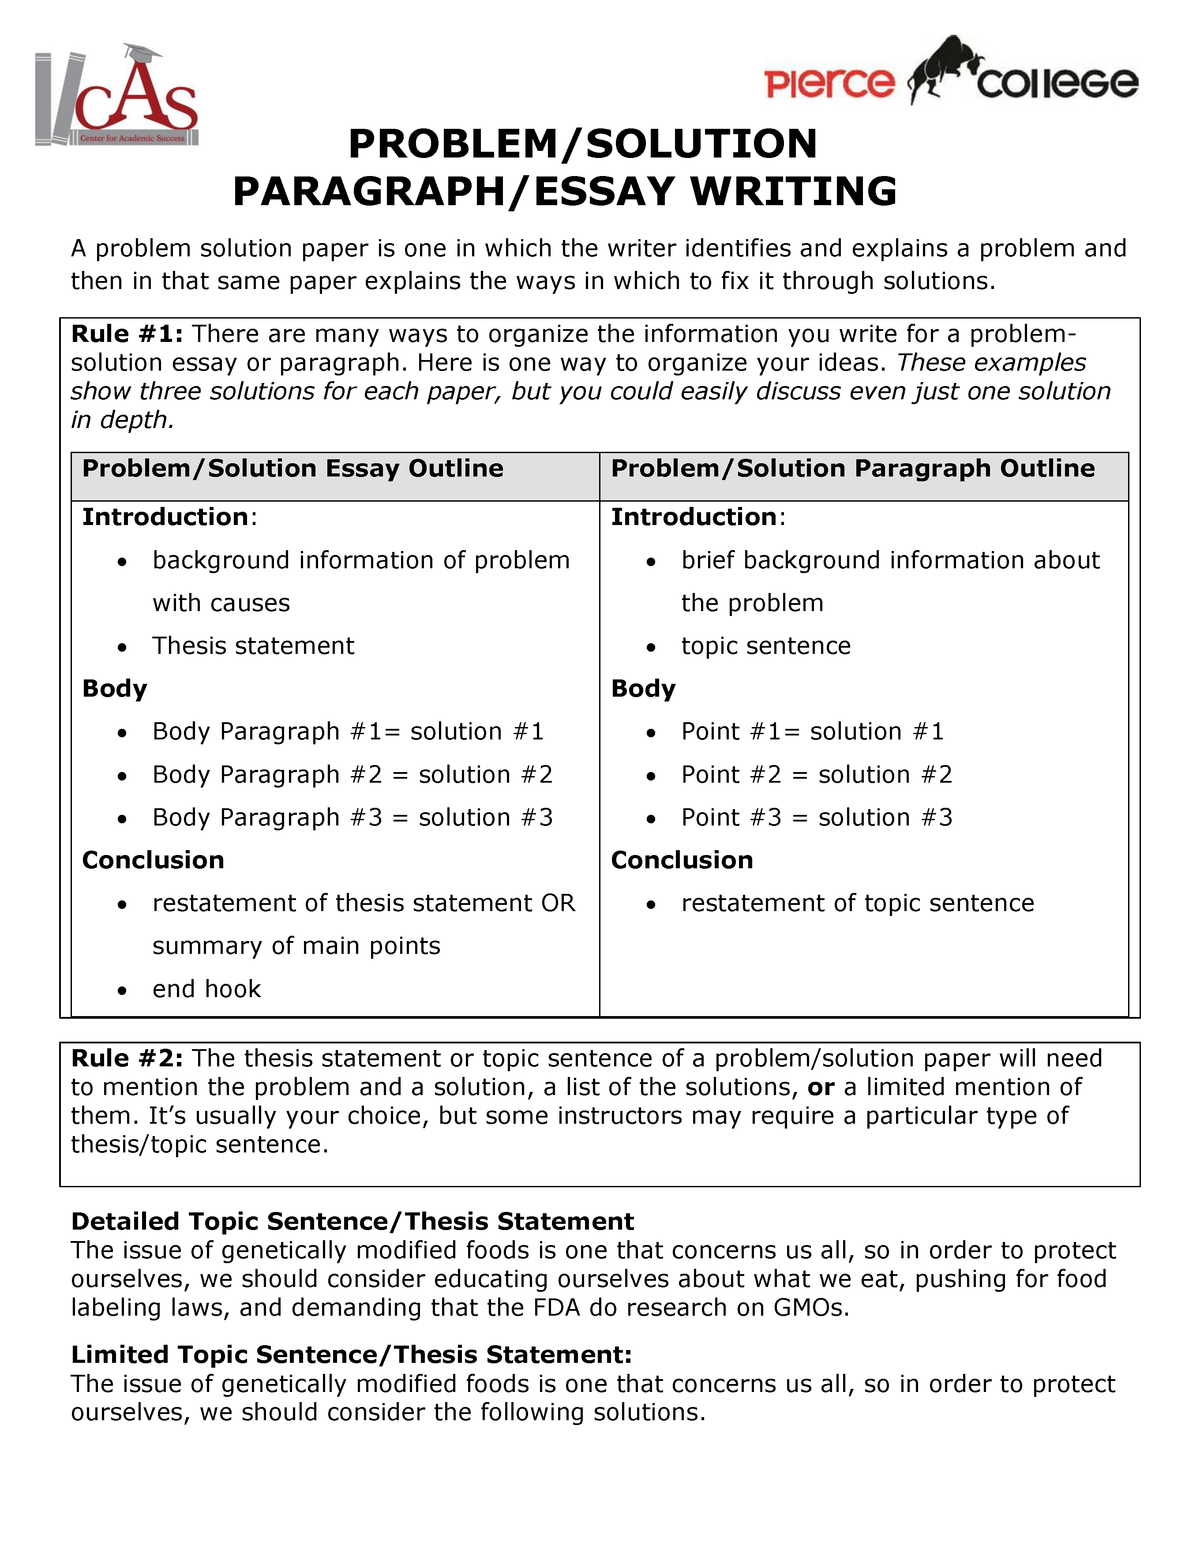 High School Essay Writing  Thesis Statement In A Narrative Essay also How To Write A College Essay Paper Problem Solution Paragraph Essay Writing   Eng  English  The Thesis Statement Of An Essay Must Be